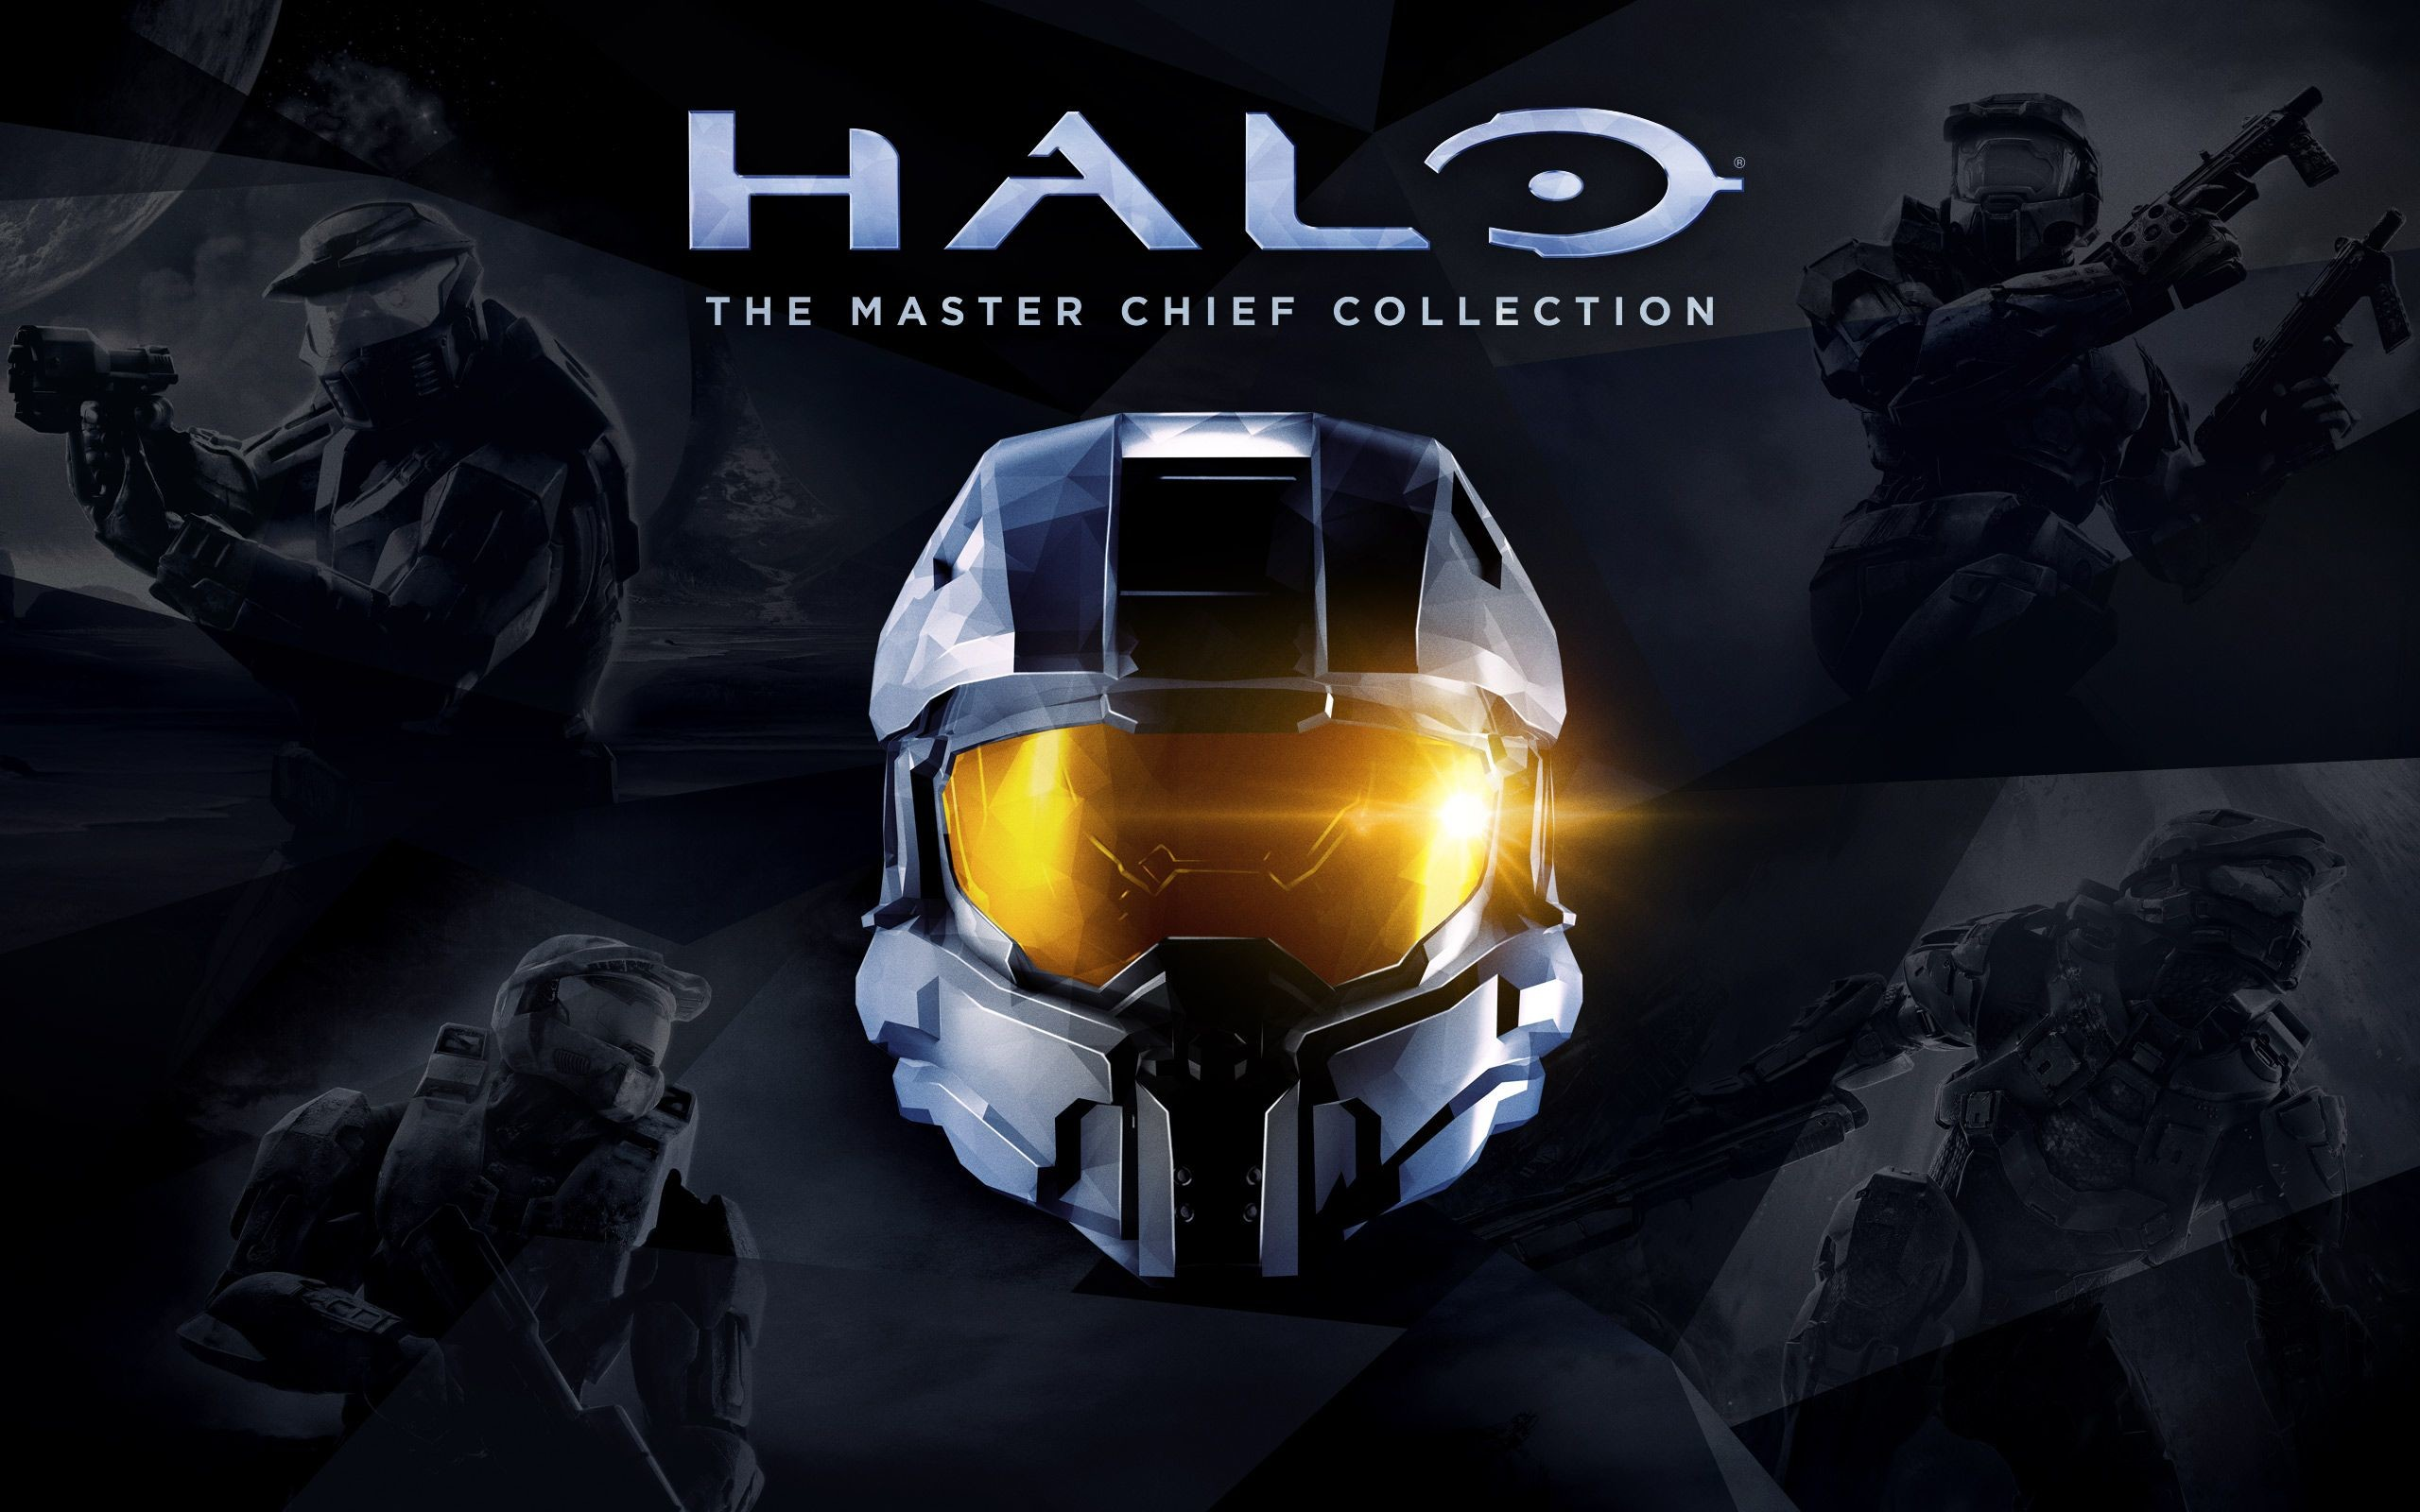 16 Halo: The Master Chief Collection HD Wallpapers